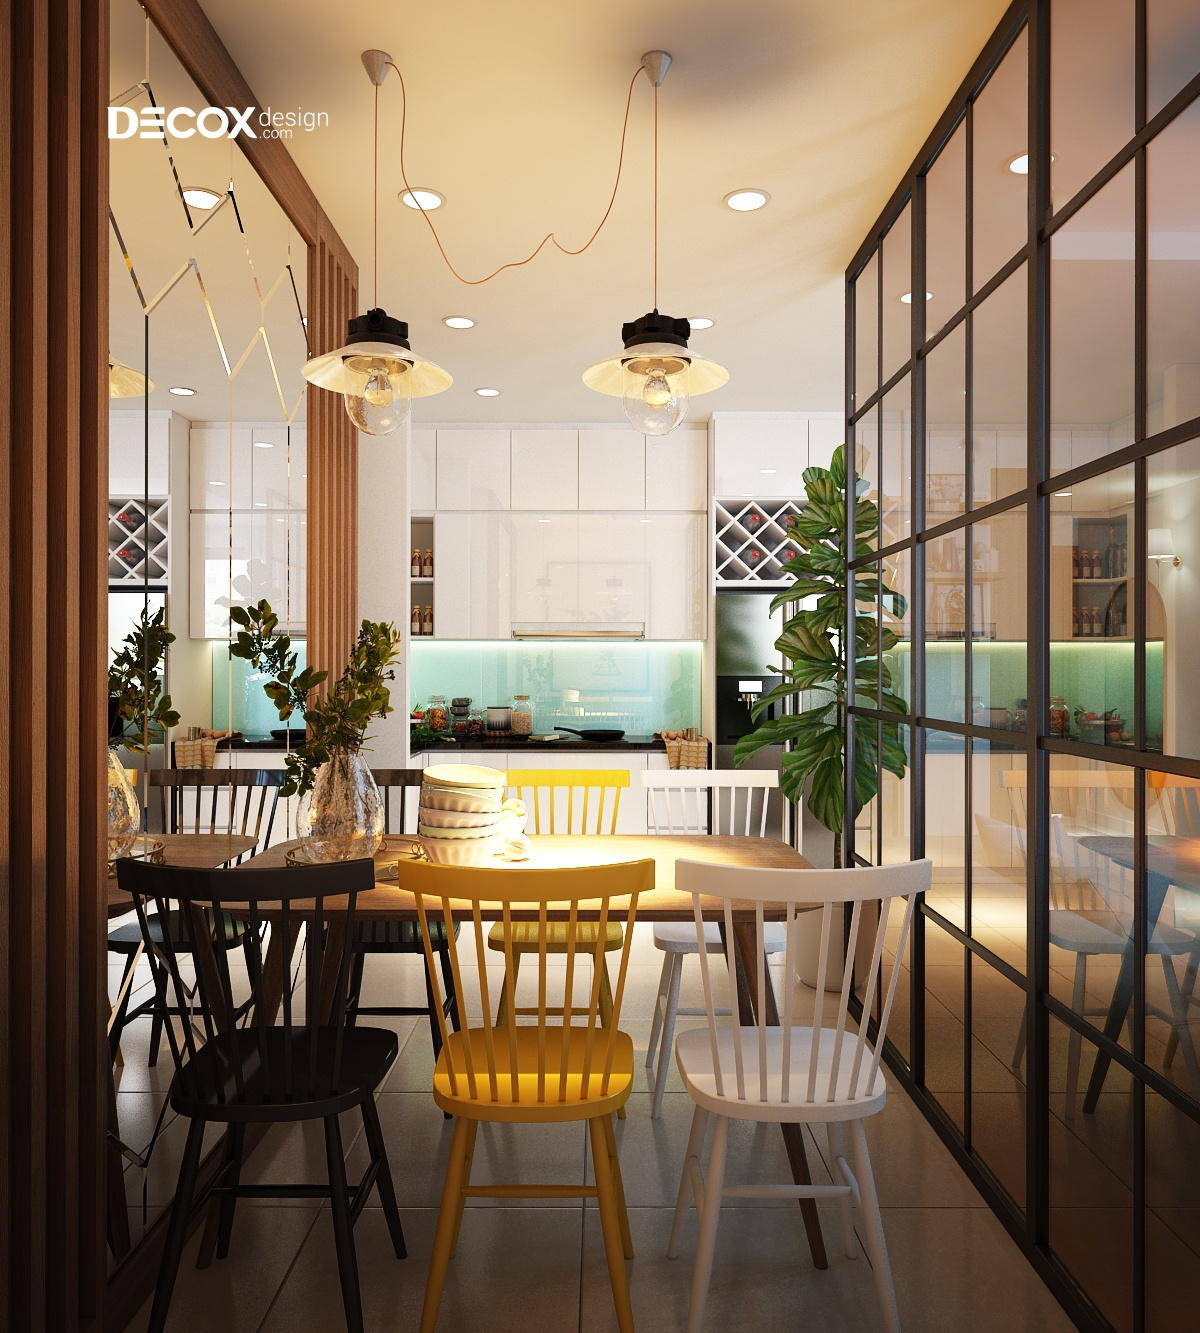 thiet-ke-noi-that-hausneo-70m2-de190080-phong-bep-05-decoxdesign